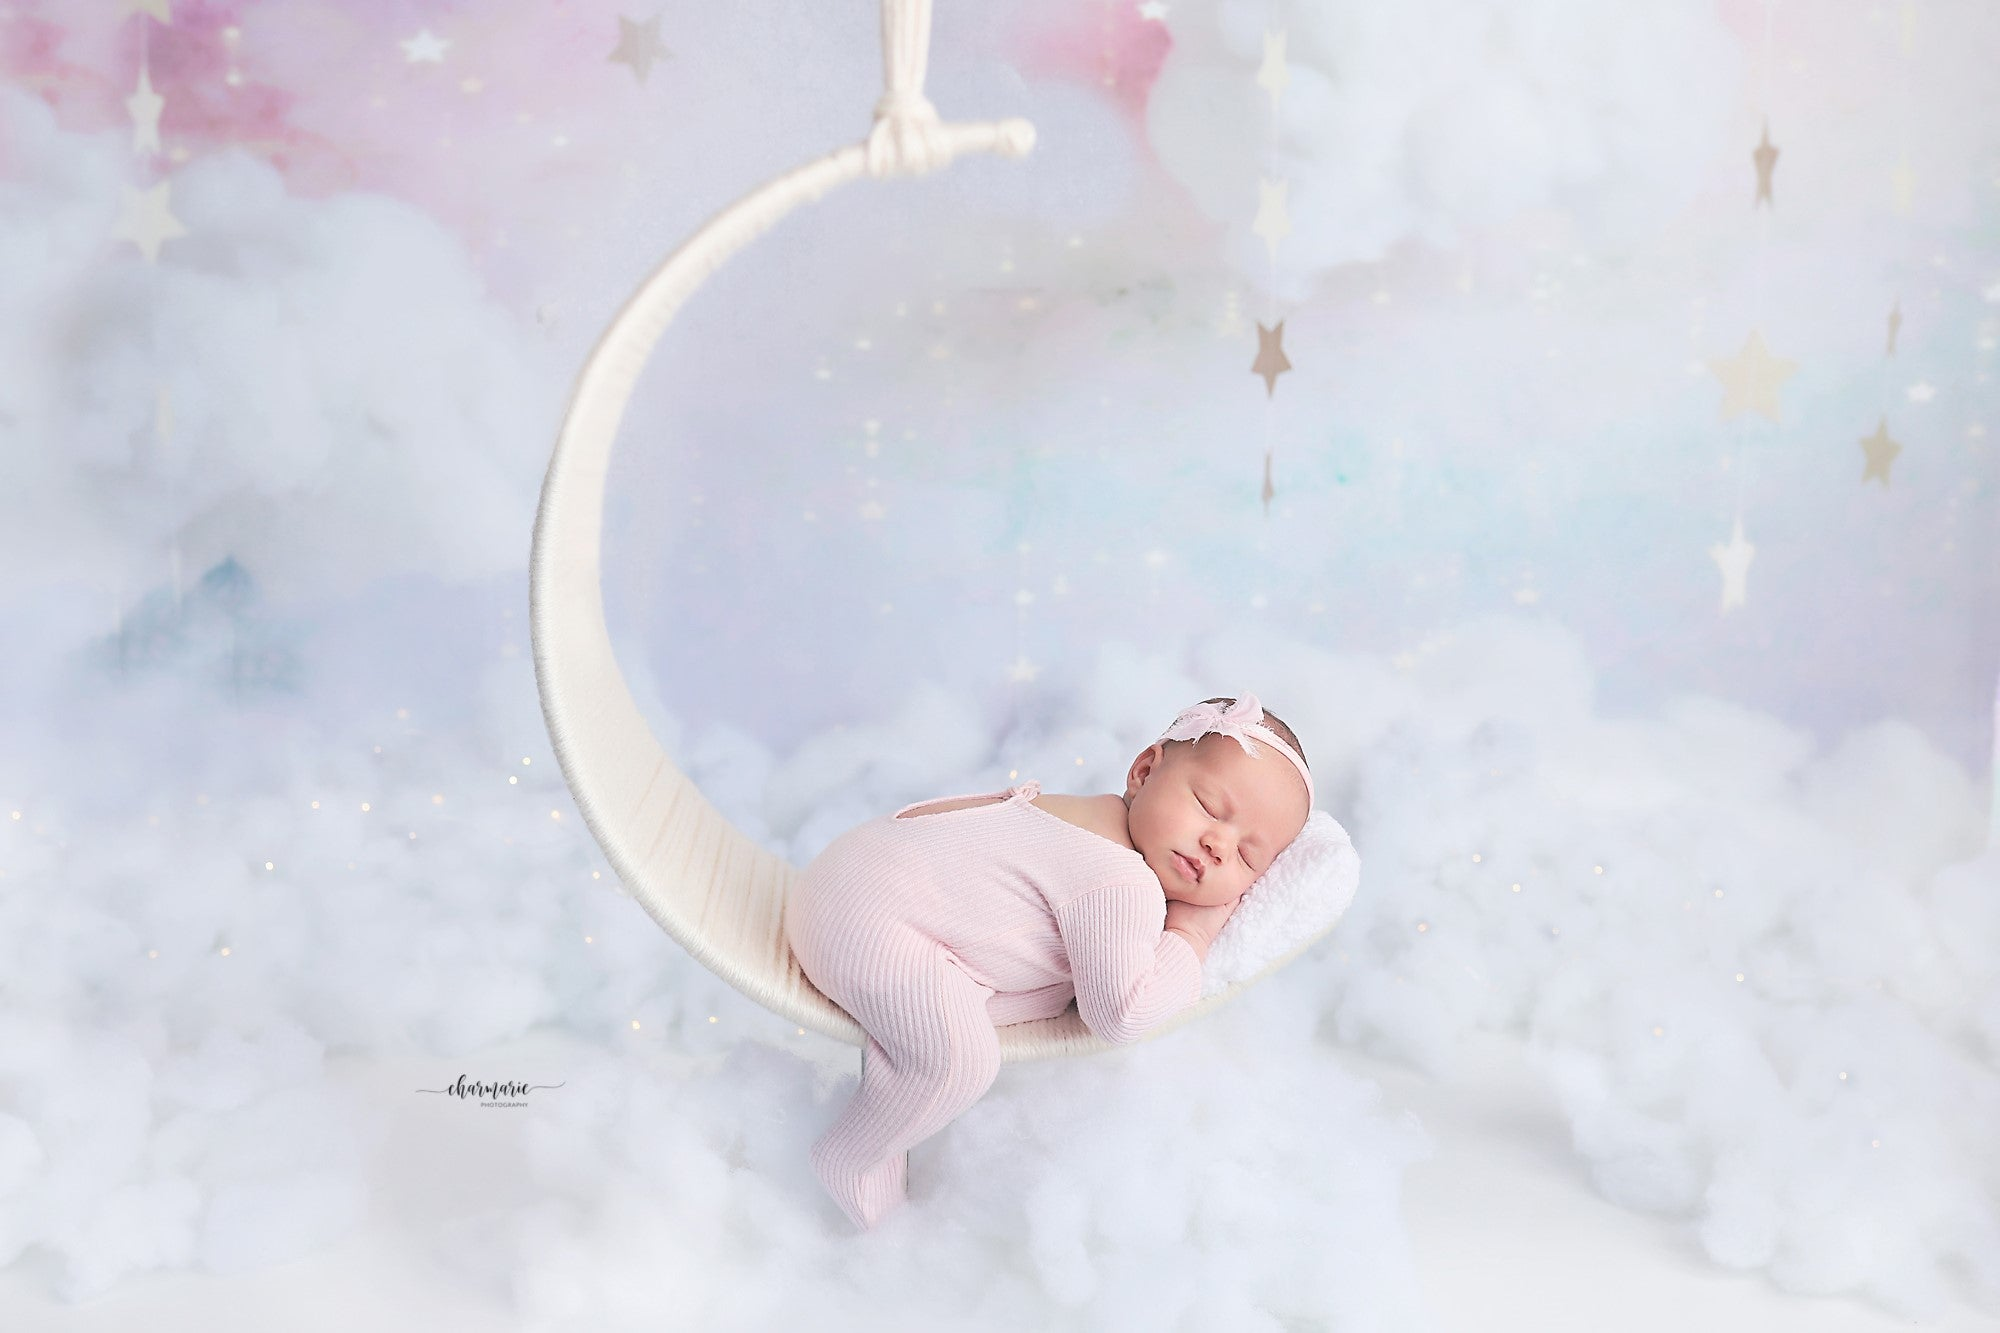 Moon Swing prop for newborn photography